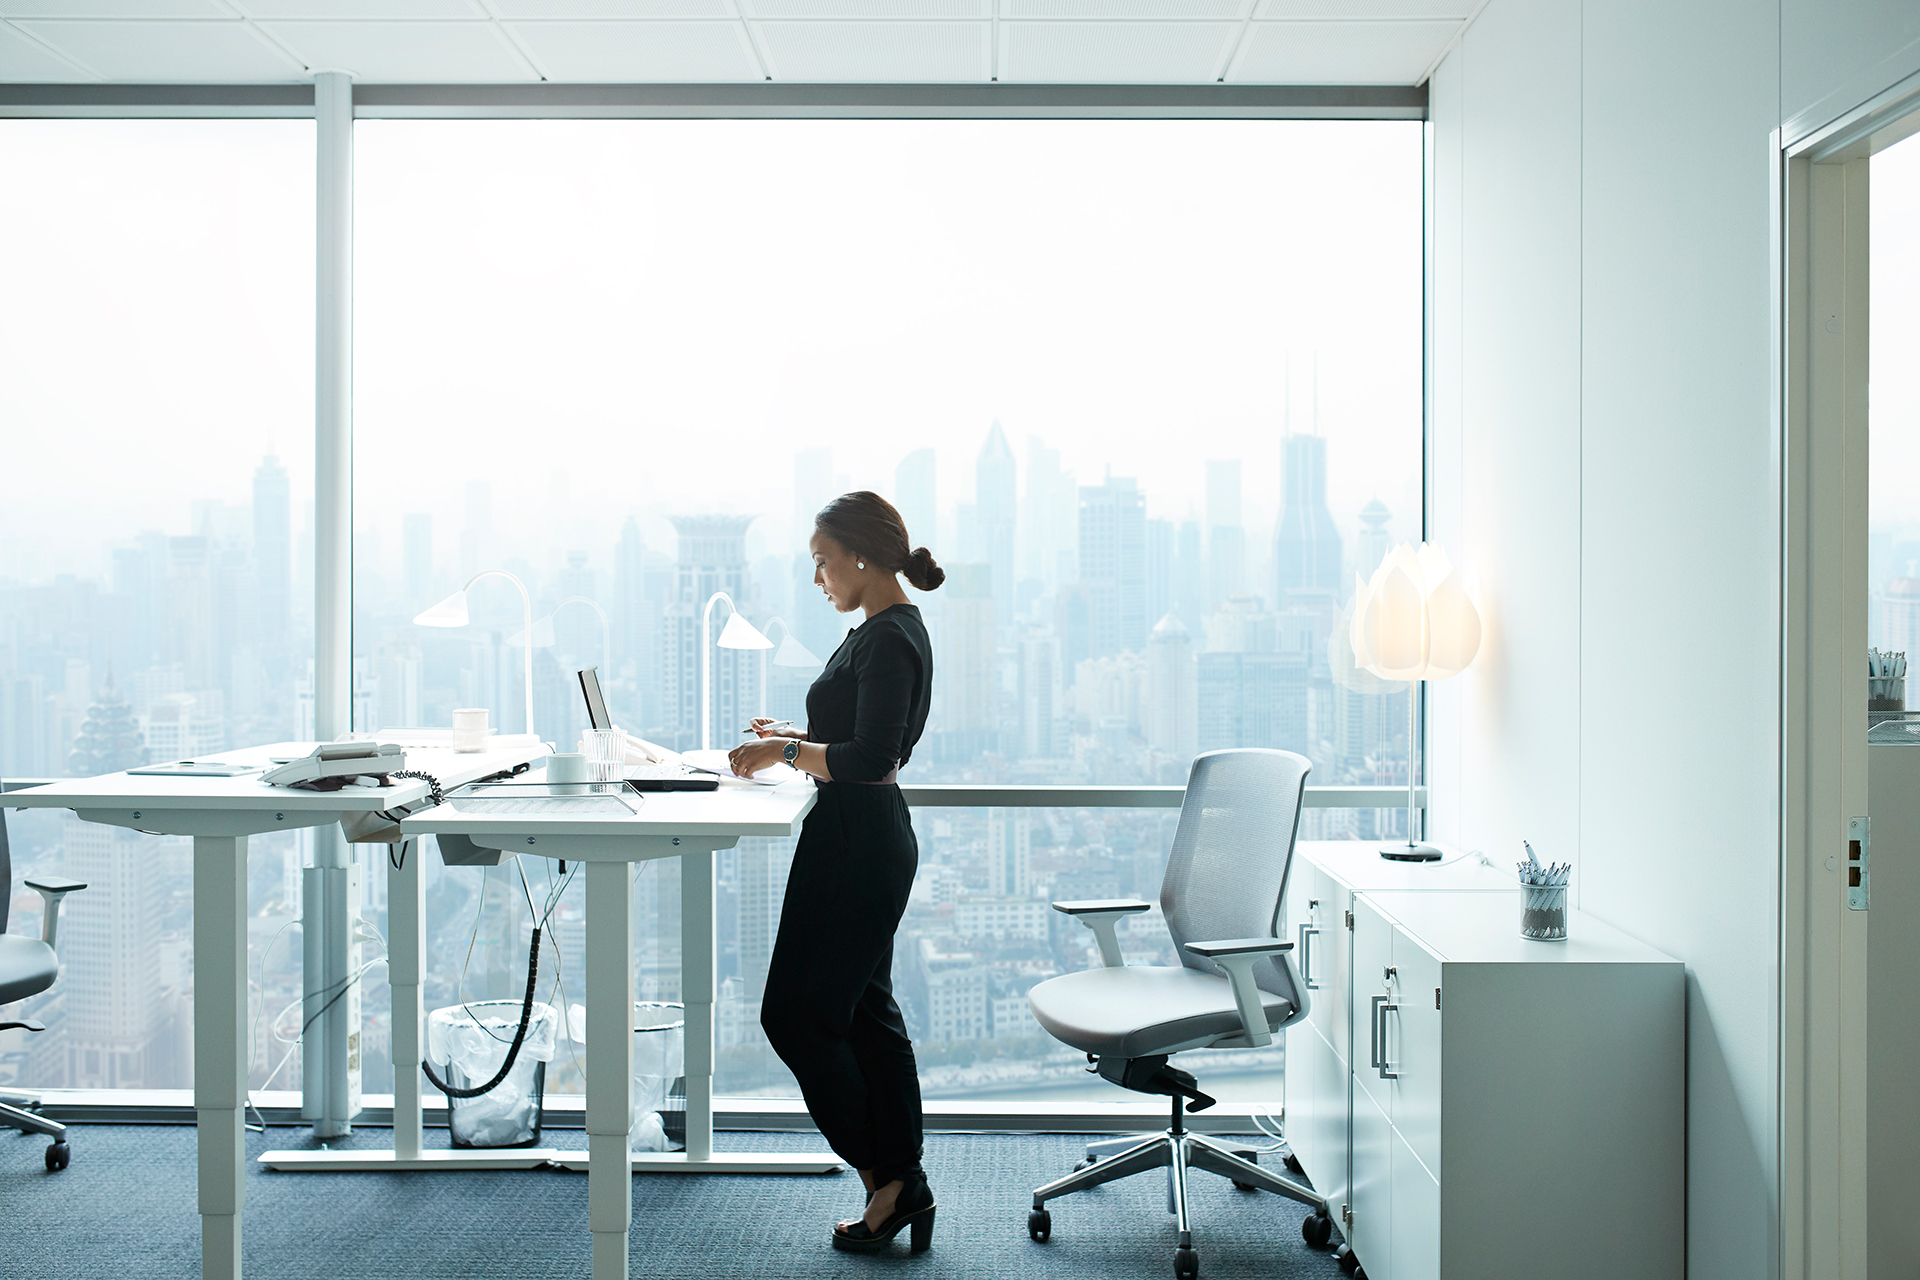 woman office standing desk large window